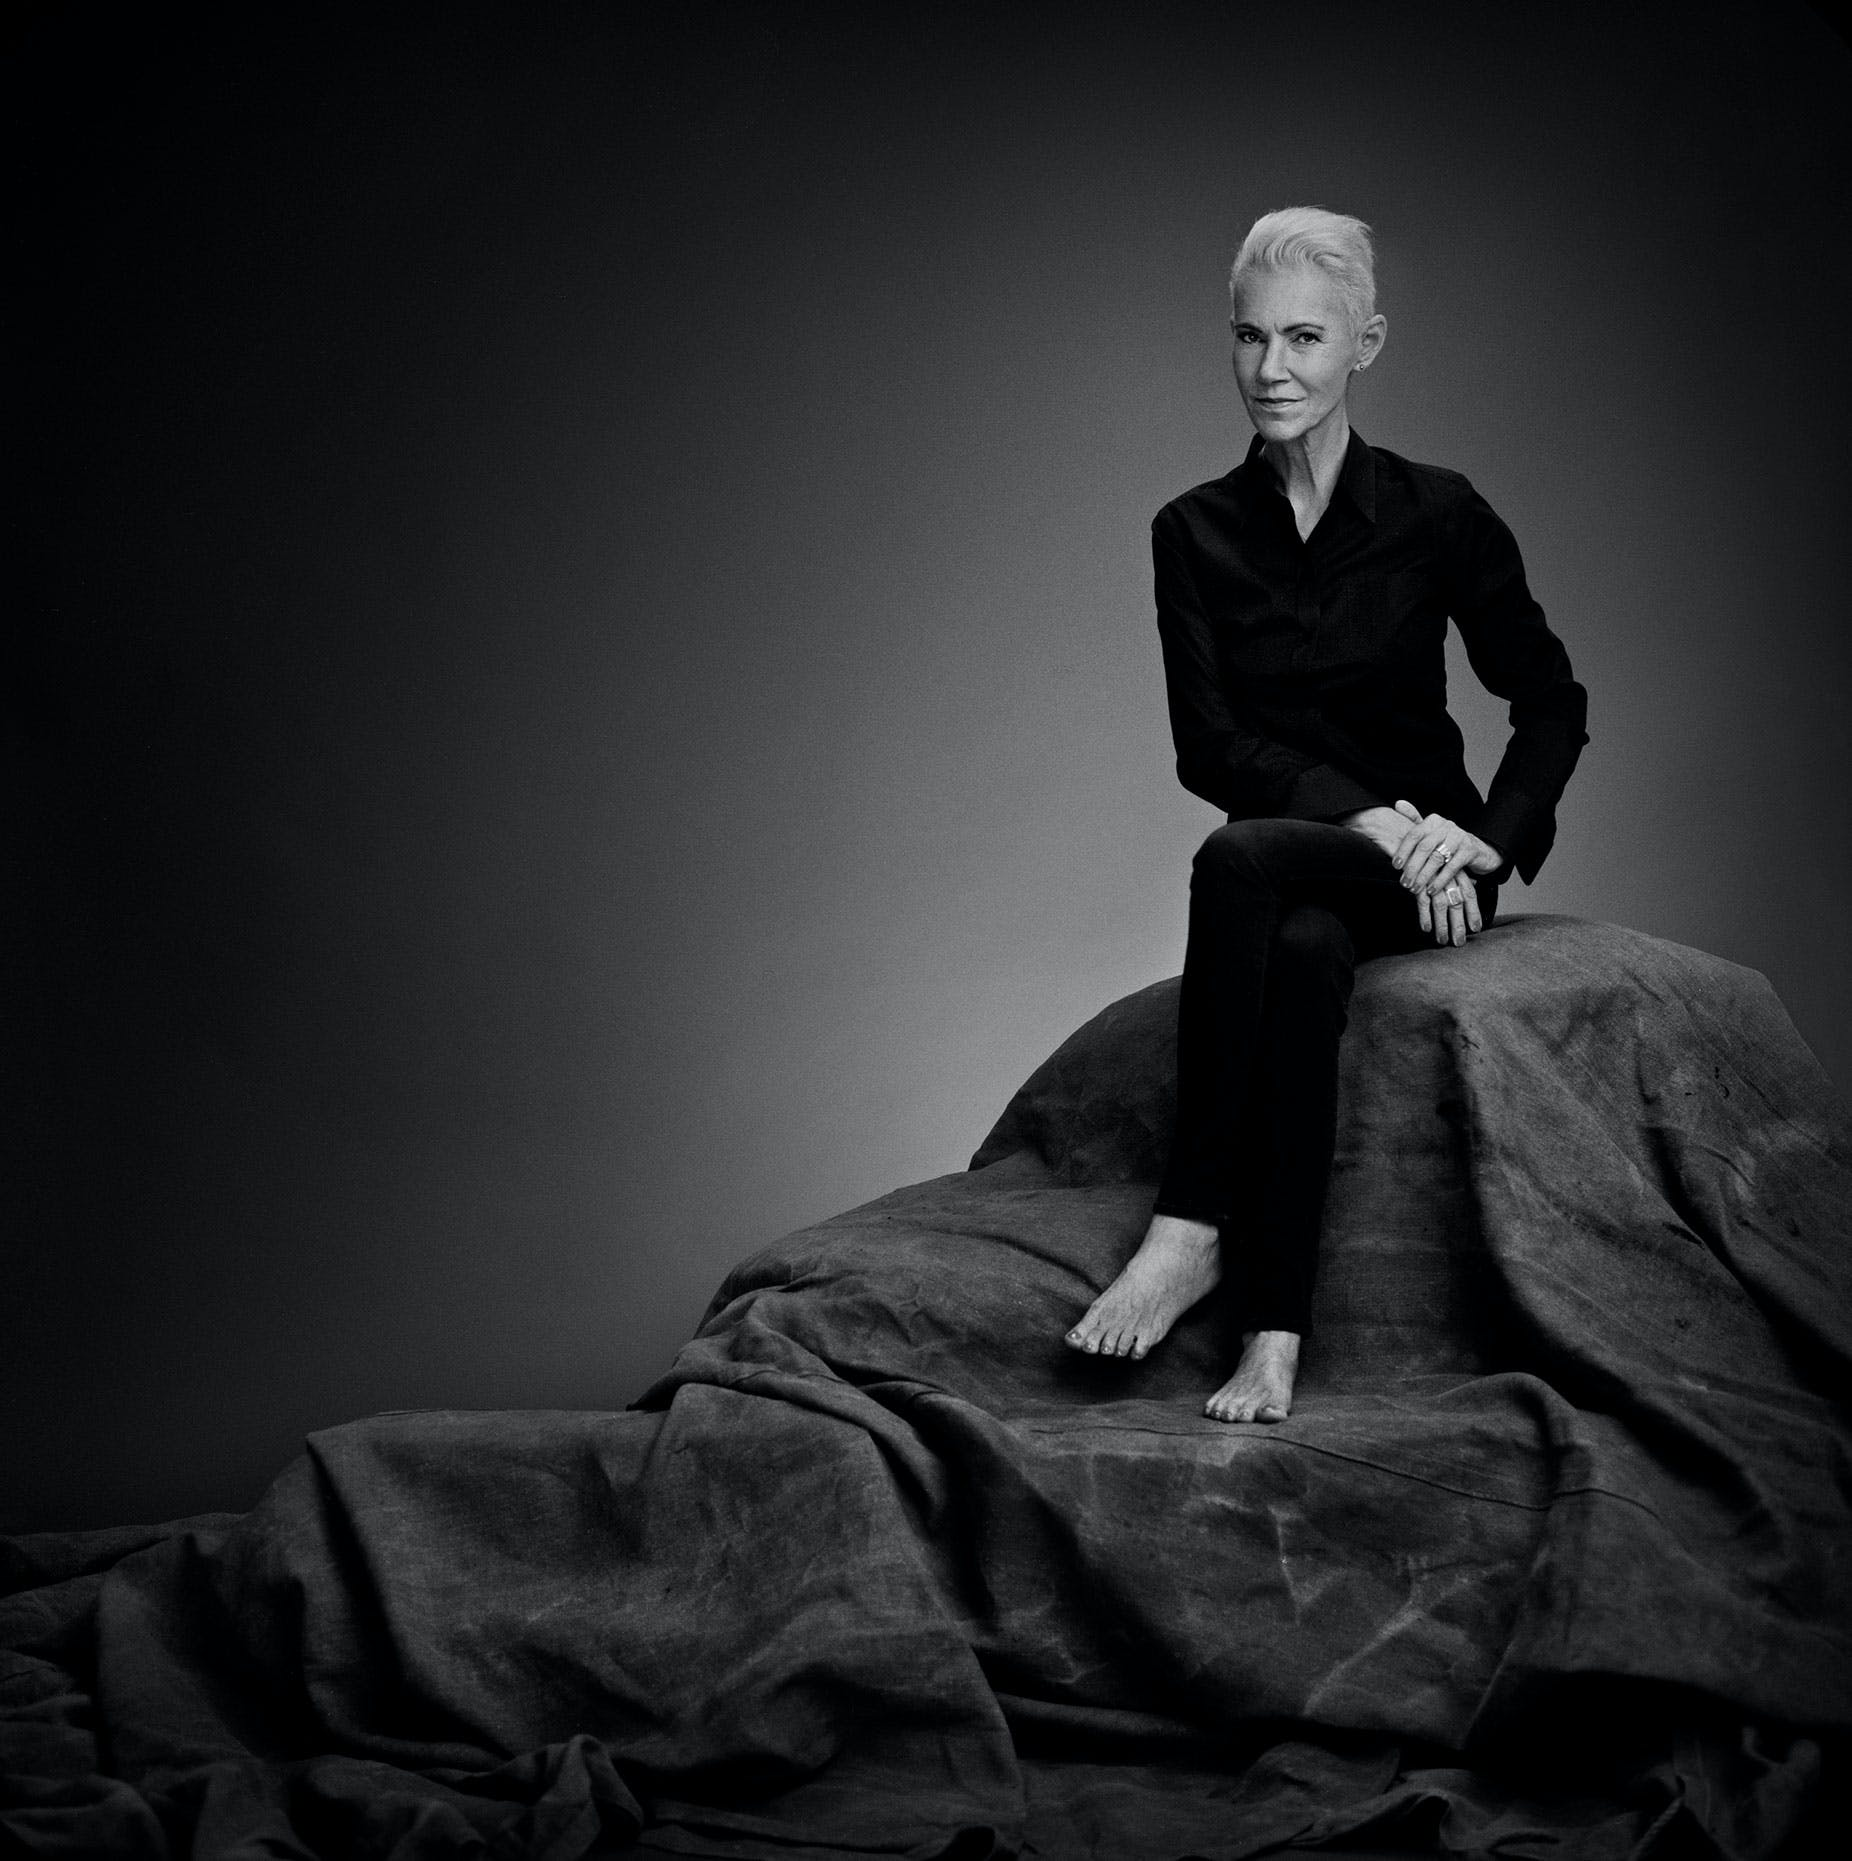 Roxette has sold around 75 million records worldwide and has had four US number-ones at the American Billboard: The Look, Listen to Your Heart, It Must Have Been Love and Joyride. When the magazine Vi met Marie Fredriksson in 2015, Roxette celebrated their 30th anniversary with a world tour.